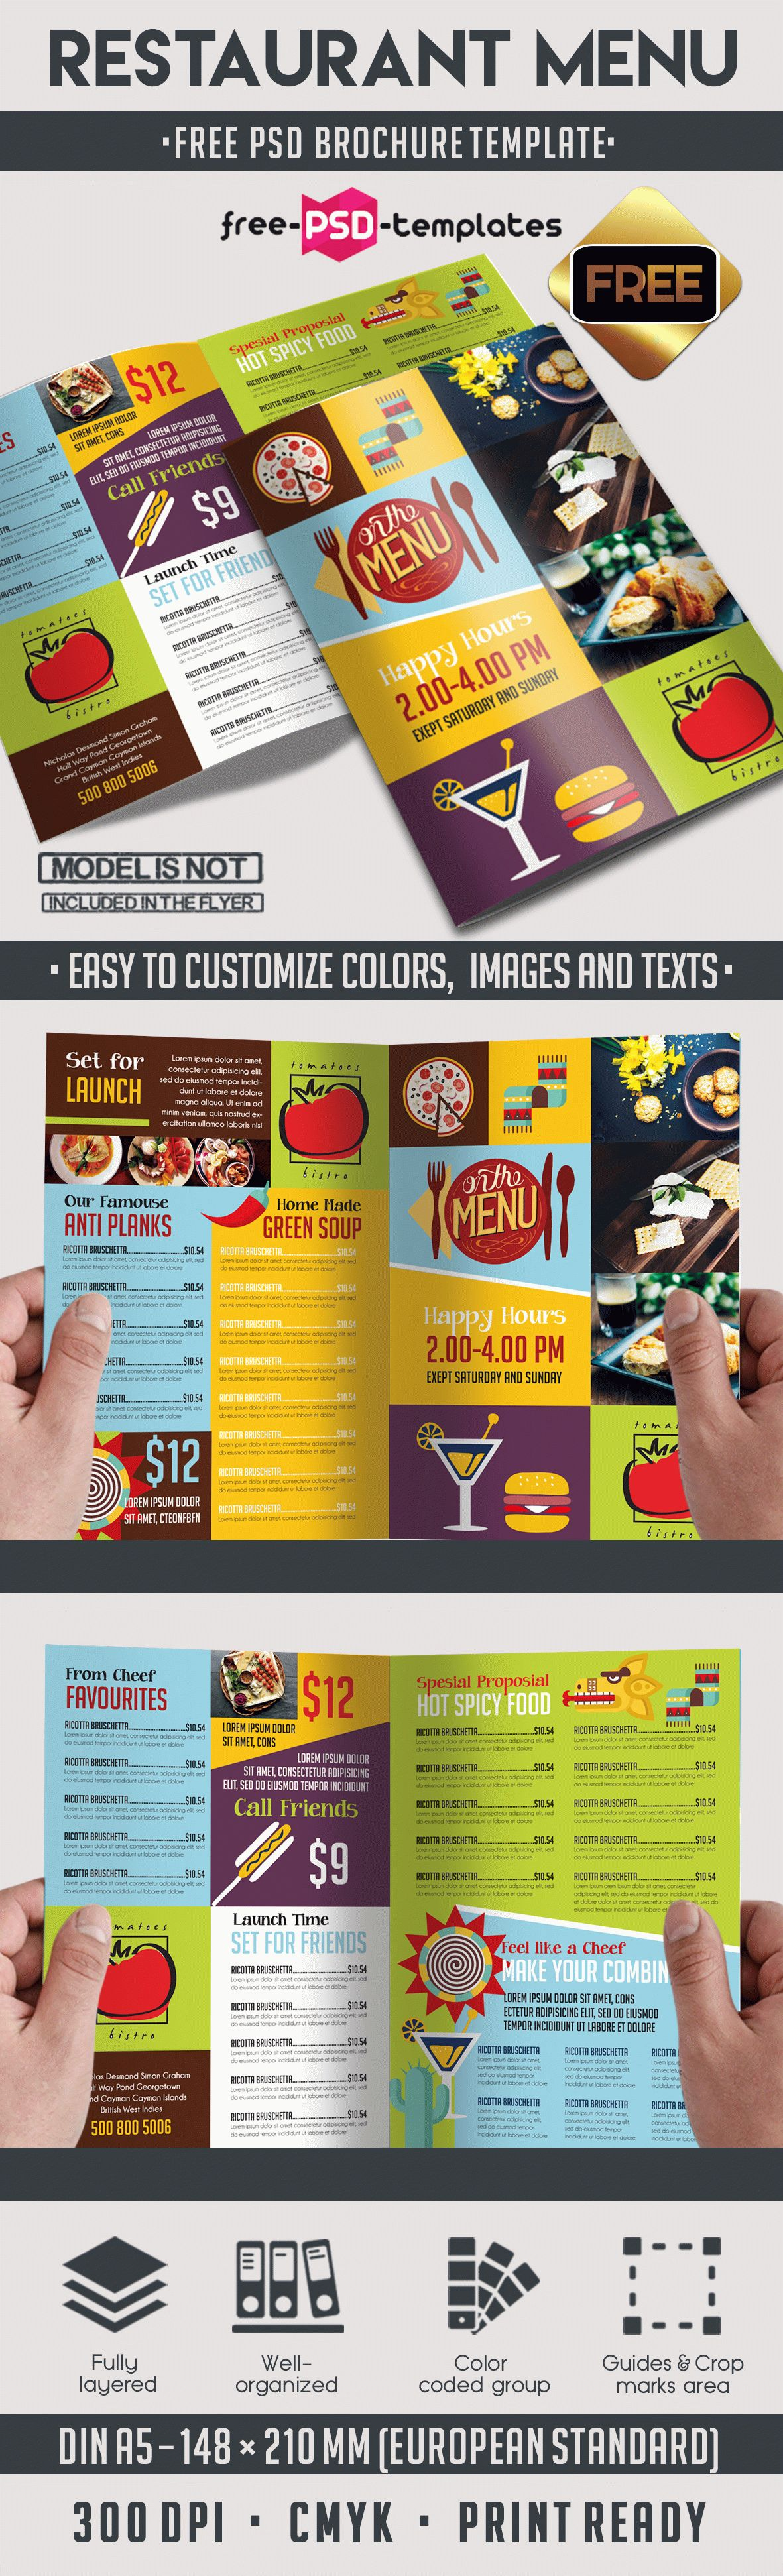 free psd brochure template download - menu free psd bi fold psd brochure template free psd